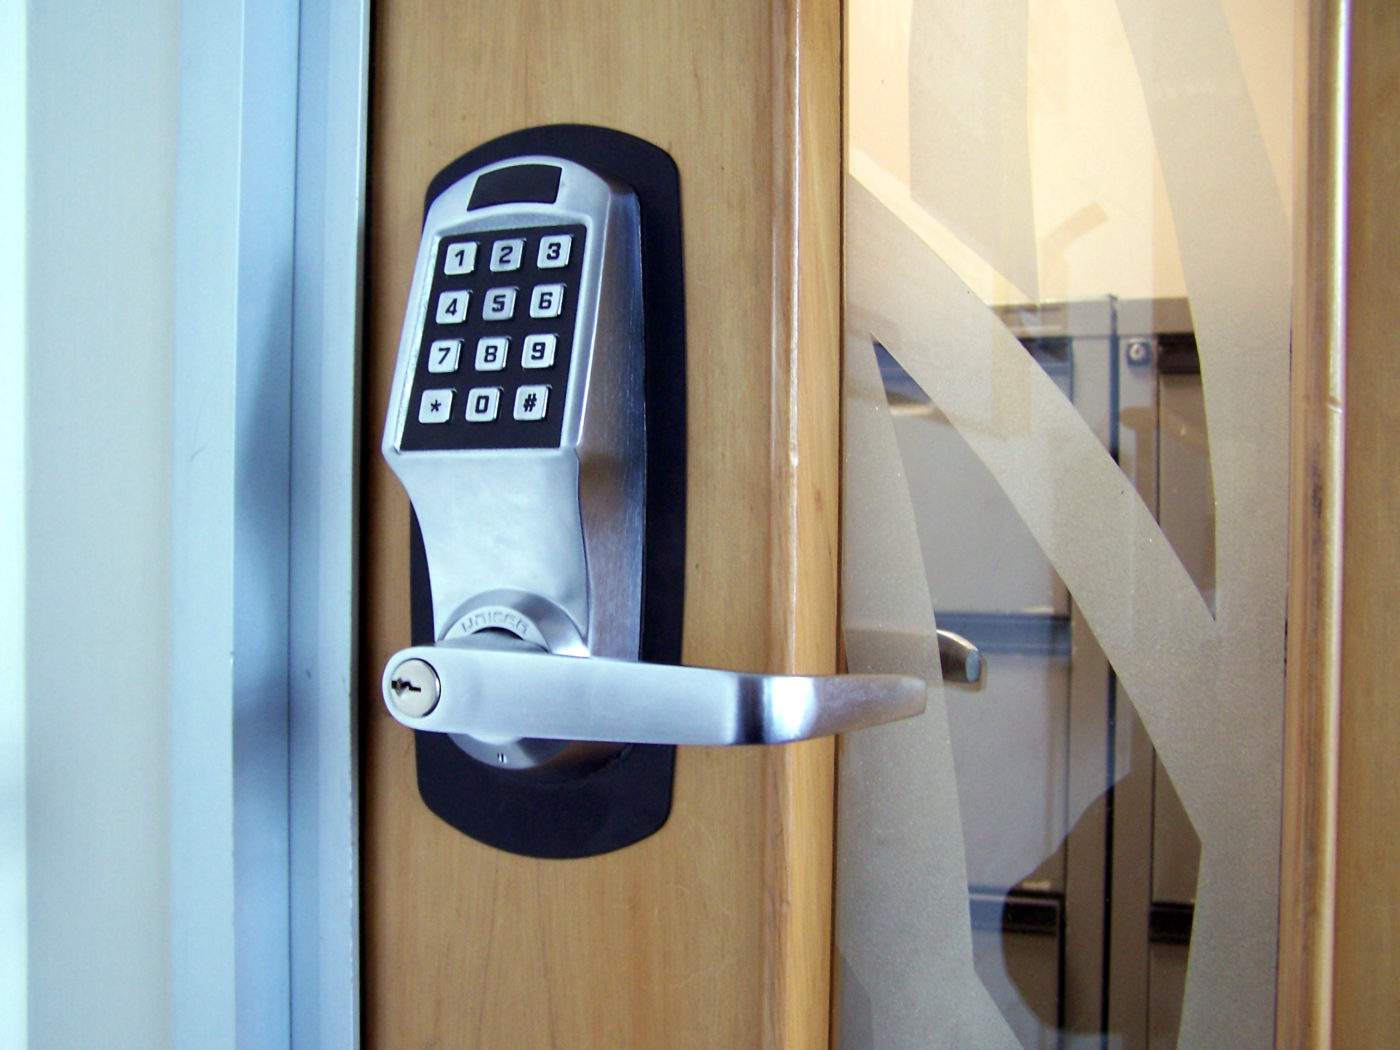 High Security Locks, pro locksmith, pro locksmith san diego, pro locksmiths, lock smith san diego, locksmiths san diego, locksmith san diego, Locksmith, Locksmith near me, san diego locksmith, san diego locksmiths, ring doorbell installation, auto locksmith san diego, san diego auto locksmith, car locksmith san diego, locksmith el cajon, locksmith chula vista, cheap locksmith, 24 hour car locksmith, auto locksmith, Lock repair, commercial locksmith, lock out services, emergency locksmith, emergency locksmith services